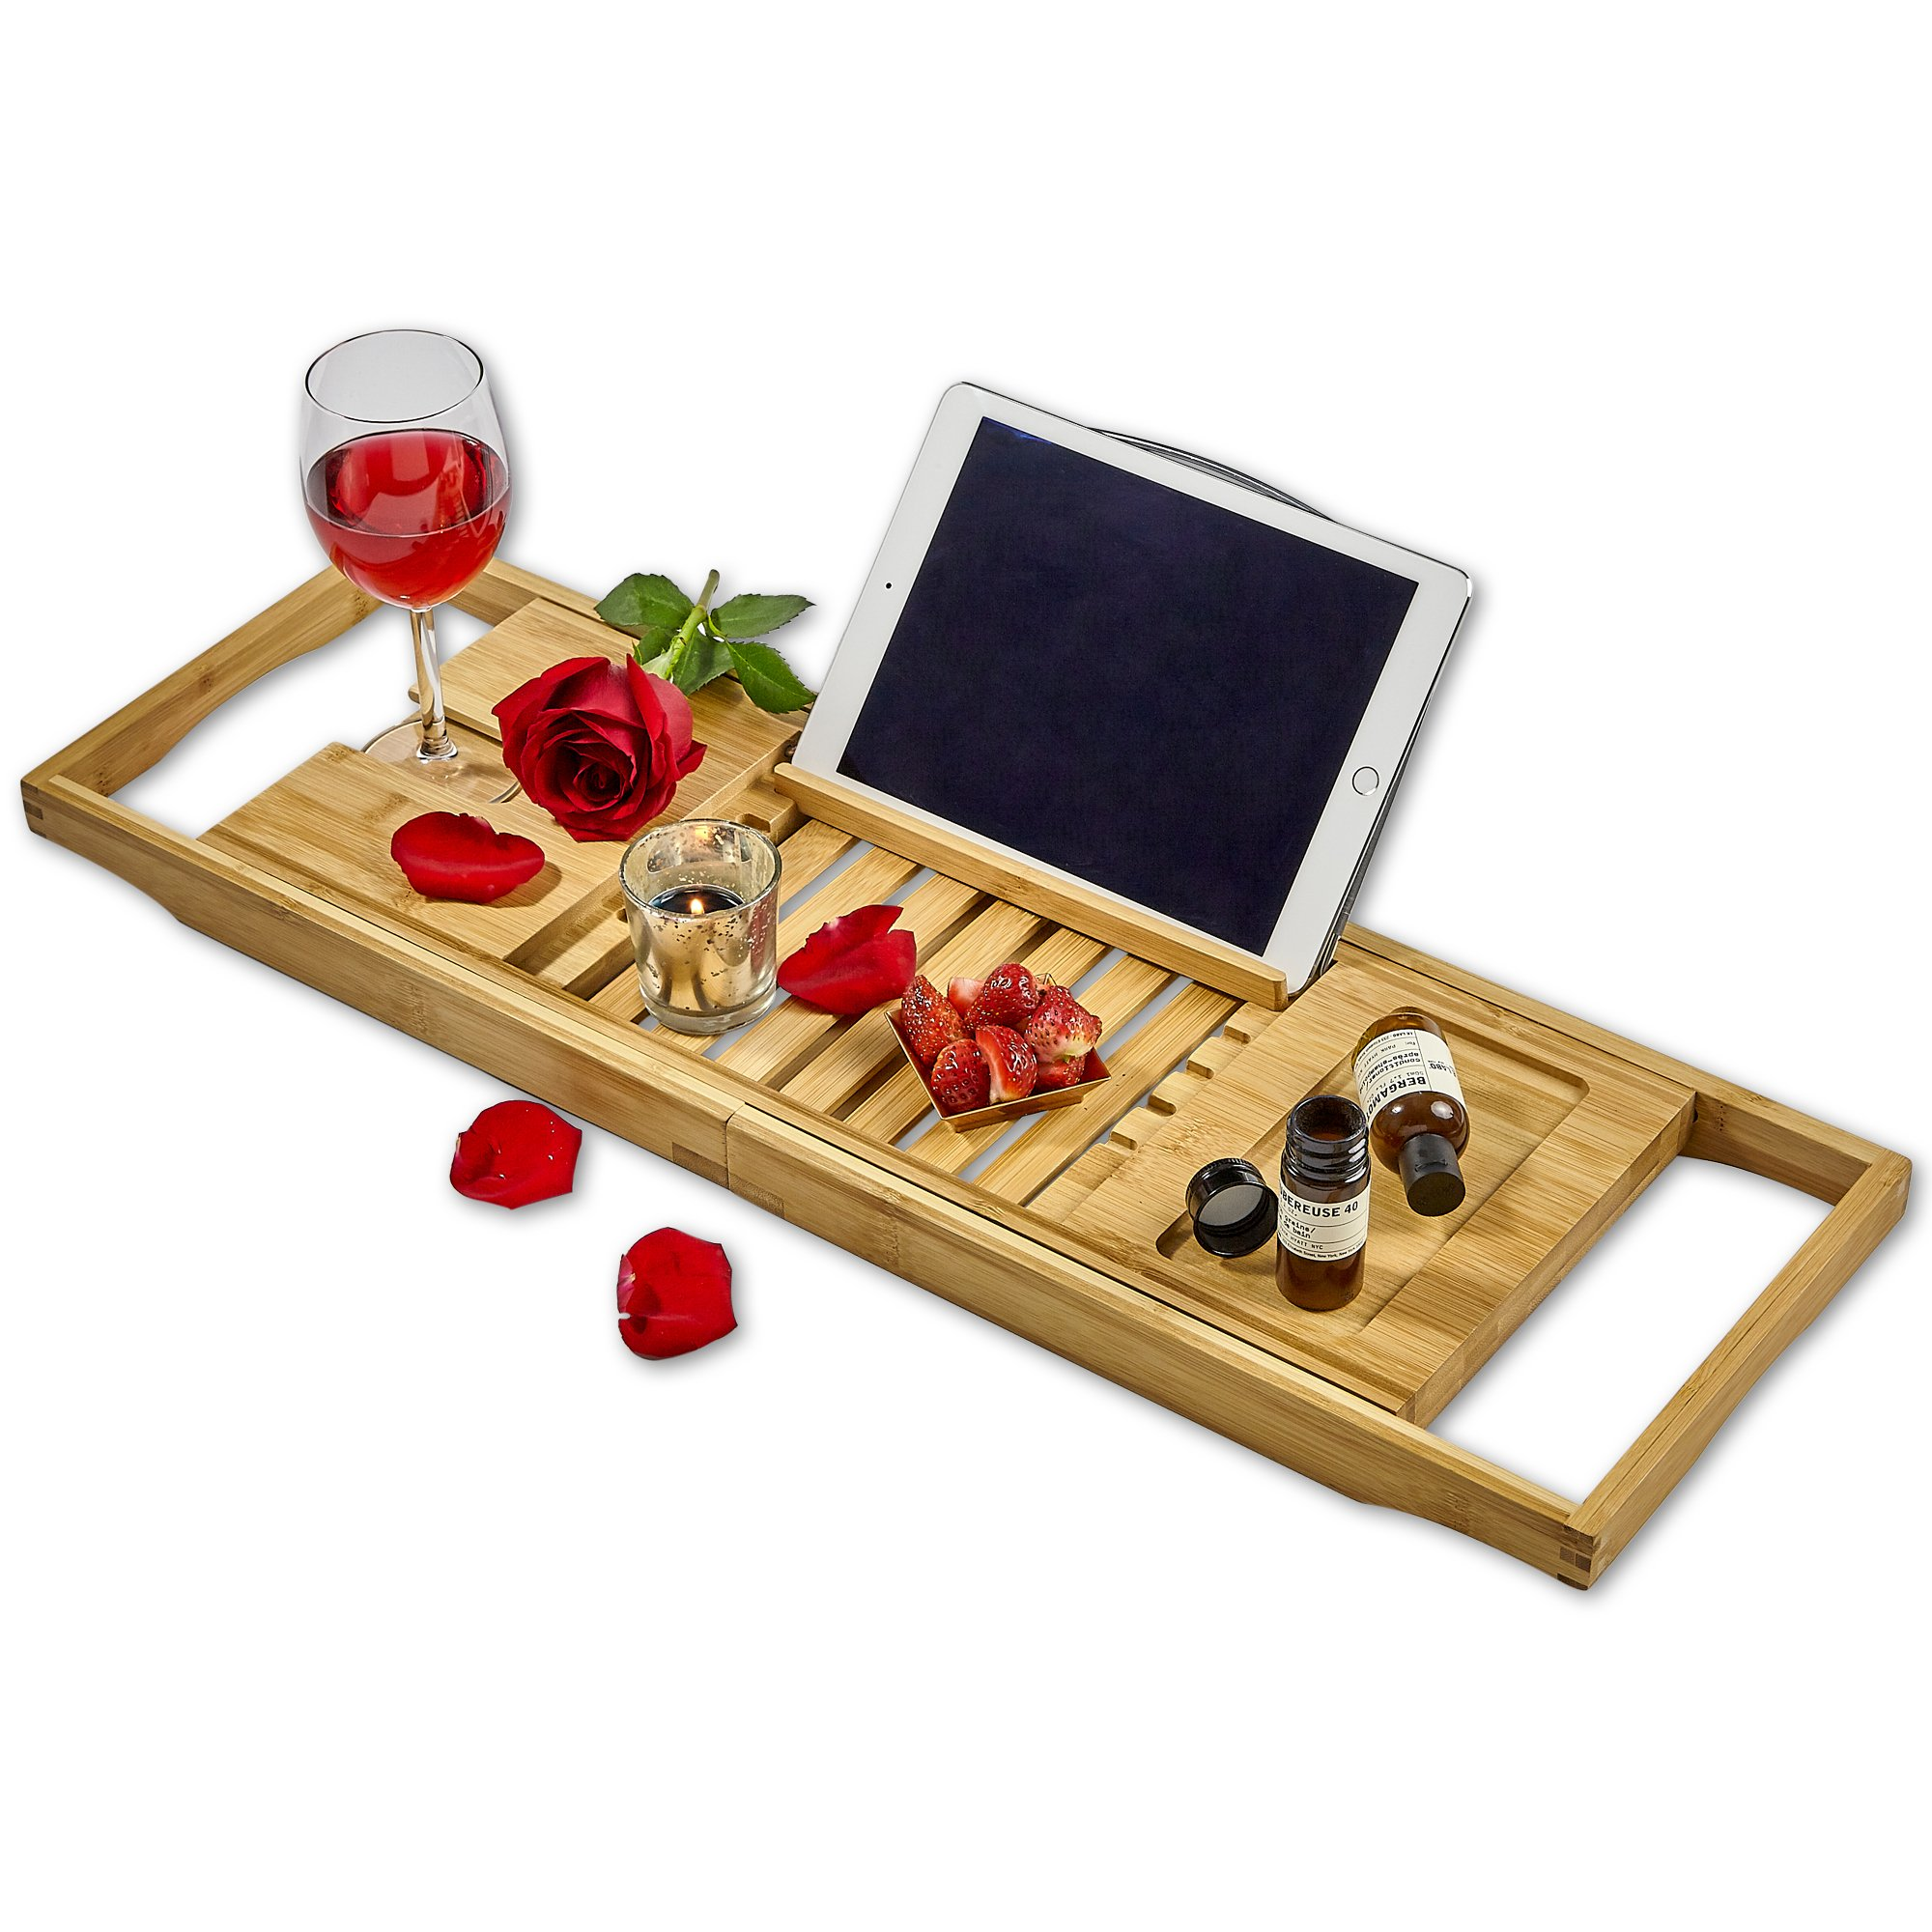 Tregini Luxury Bathtub Caddy - Extendable Bamboo Wood Bath Tray with Adjustable Book, iPad or Kindle Reading Rack - Wine Glass Holder - Cellphone or Tablet Slot by Tregini (Image #1)